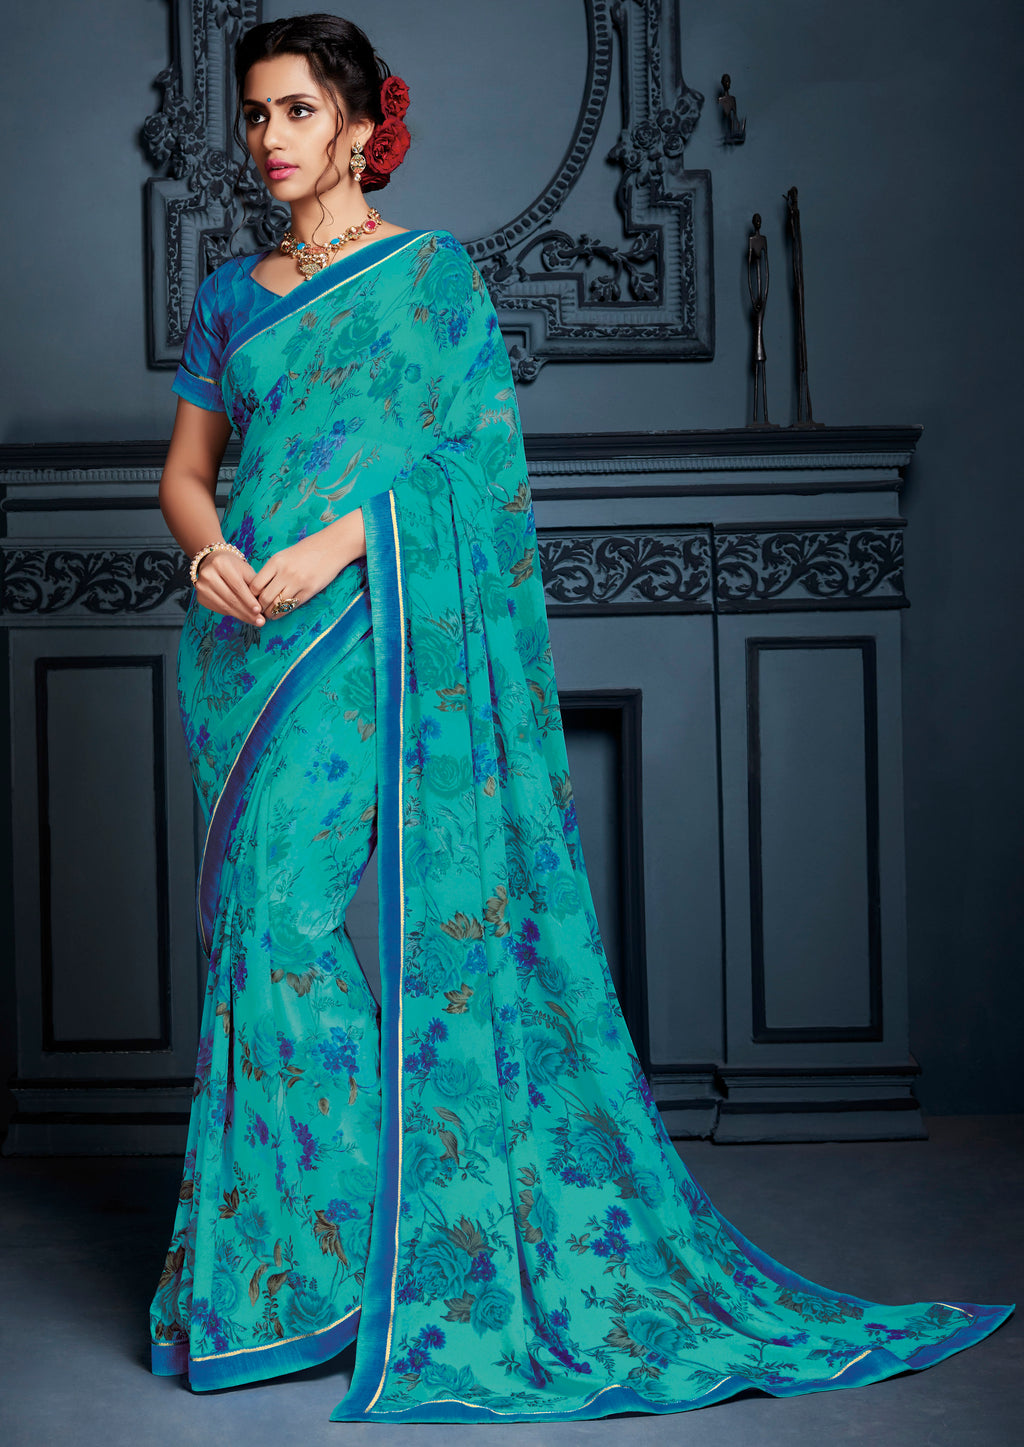 Aqua Blue Color Georgette Kitty Party Sarees NYF-8572